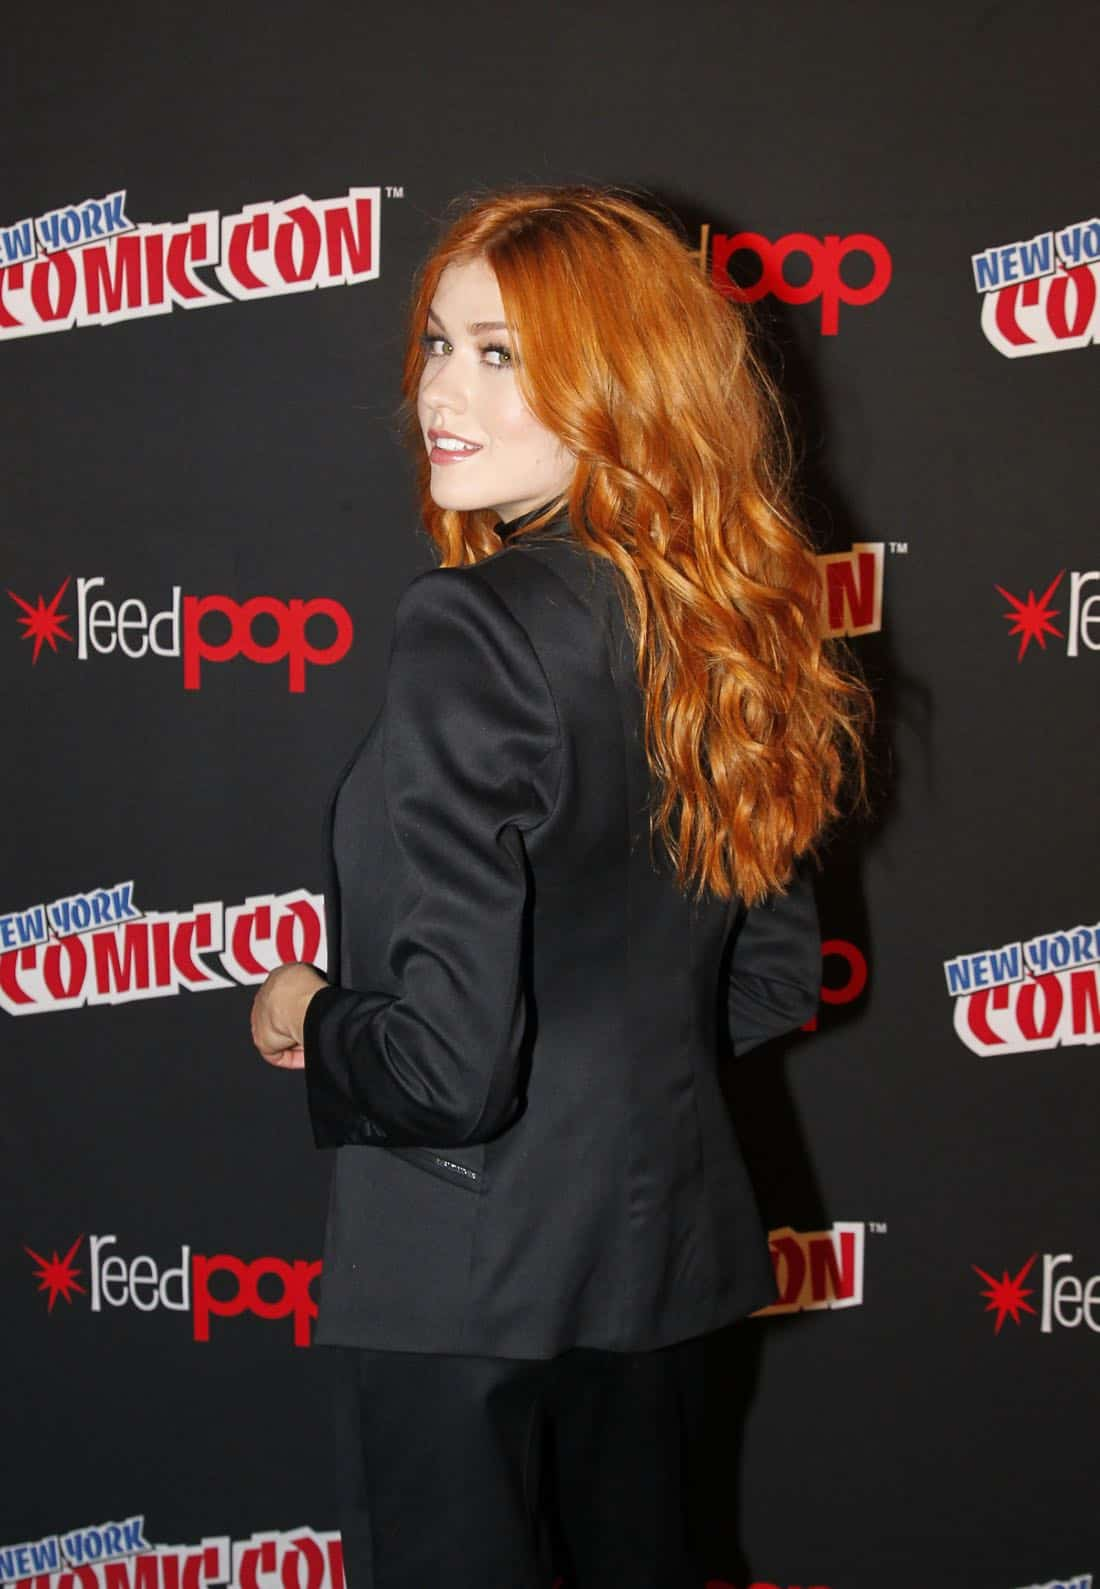 """NY COMIC-CON 2017 - Freeform's genre programming was out in full force at this year's New York Comic Con on Saturday, October 7th with executive producers and cast from the hit series """"Shadowhunters,"""" """"Beyond,"""" and new original series """"Siren.""""  (ABC/Lou Rocco) KATHERINE MCNAMARA"""